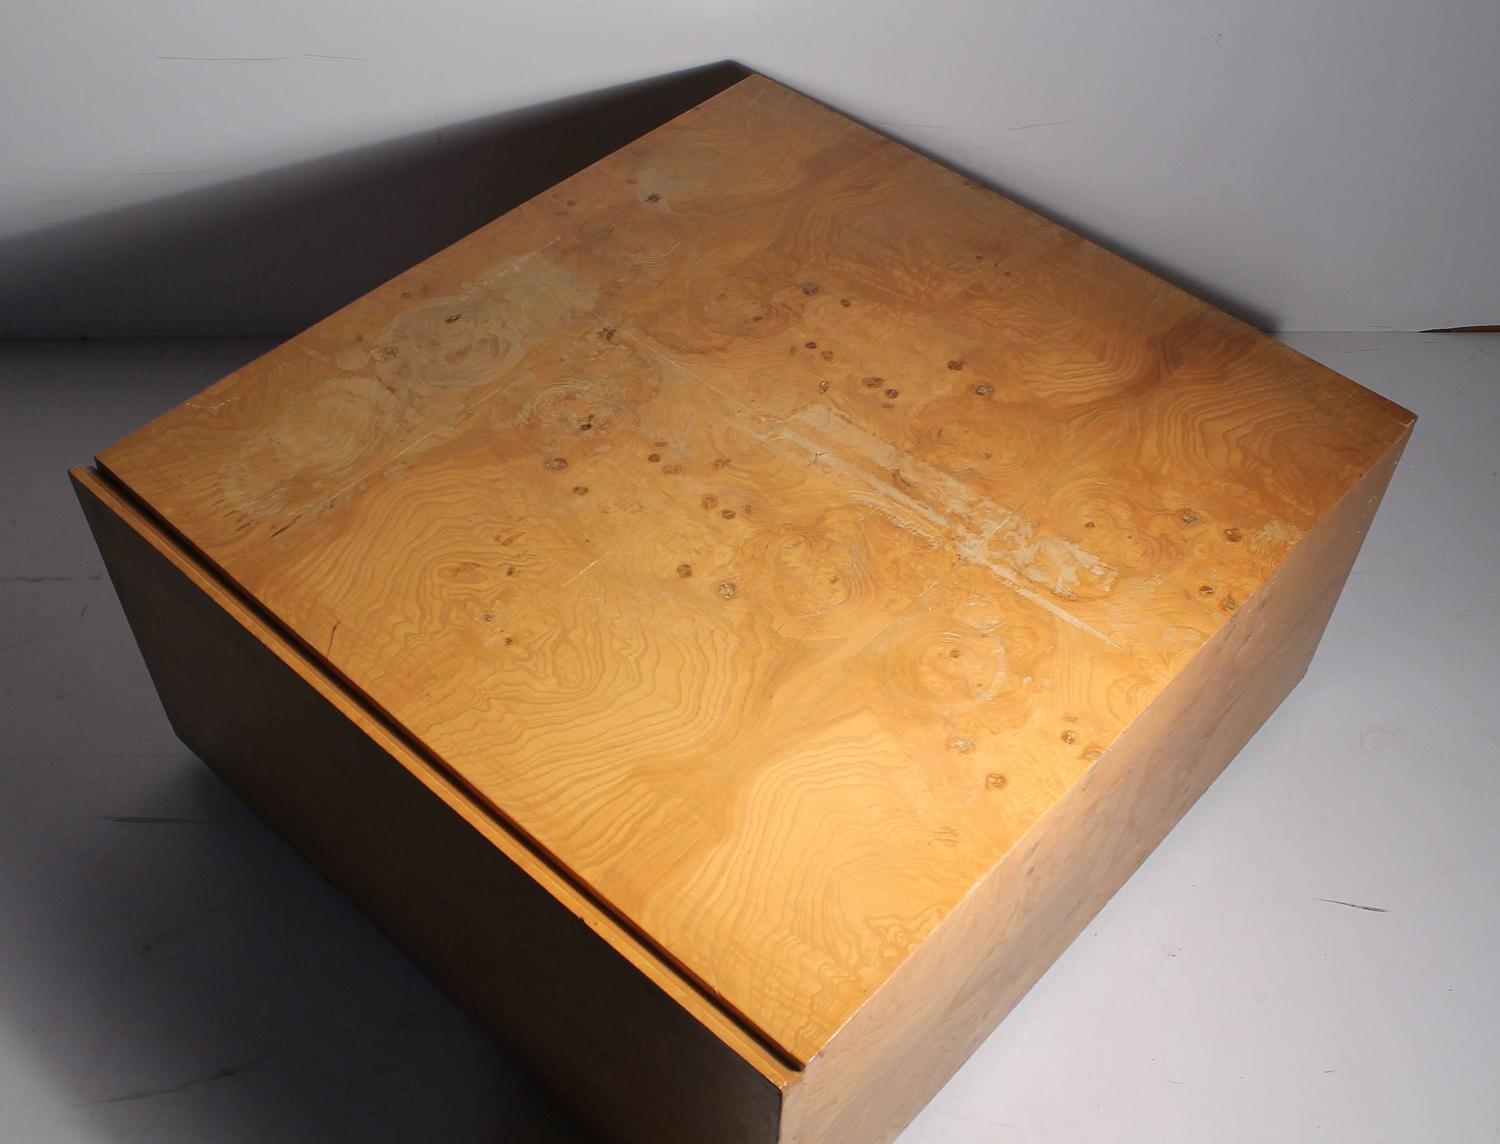 Superb img of  Burl Wood Coffee Table on Castors with Large Drawer / End at 1stdibs with #BD700E color and 1500x1144 pixels